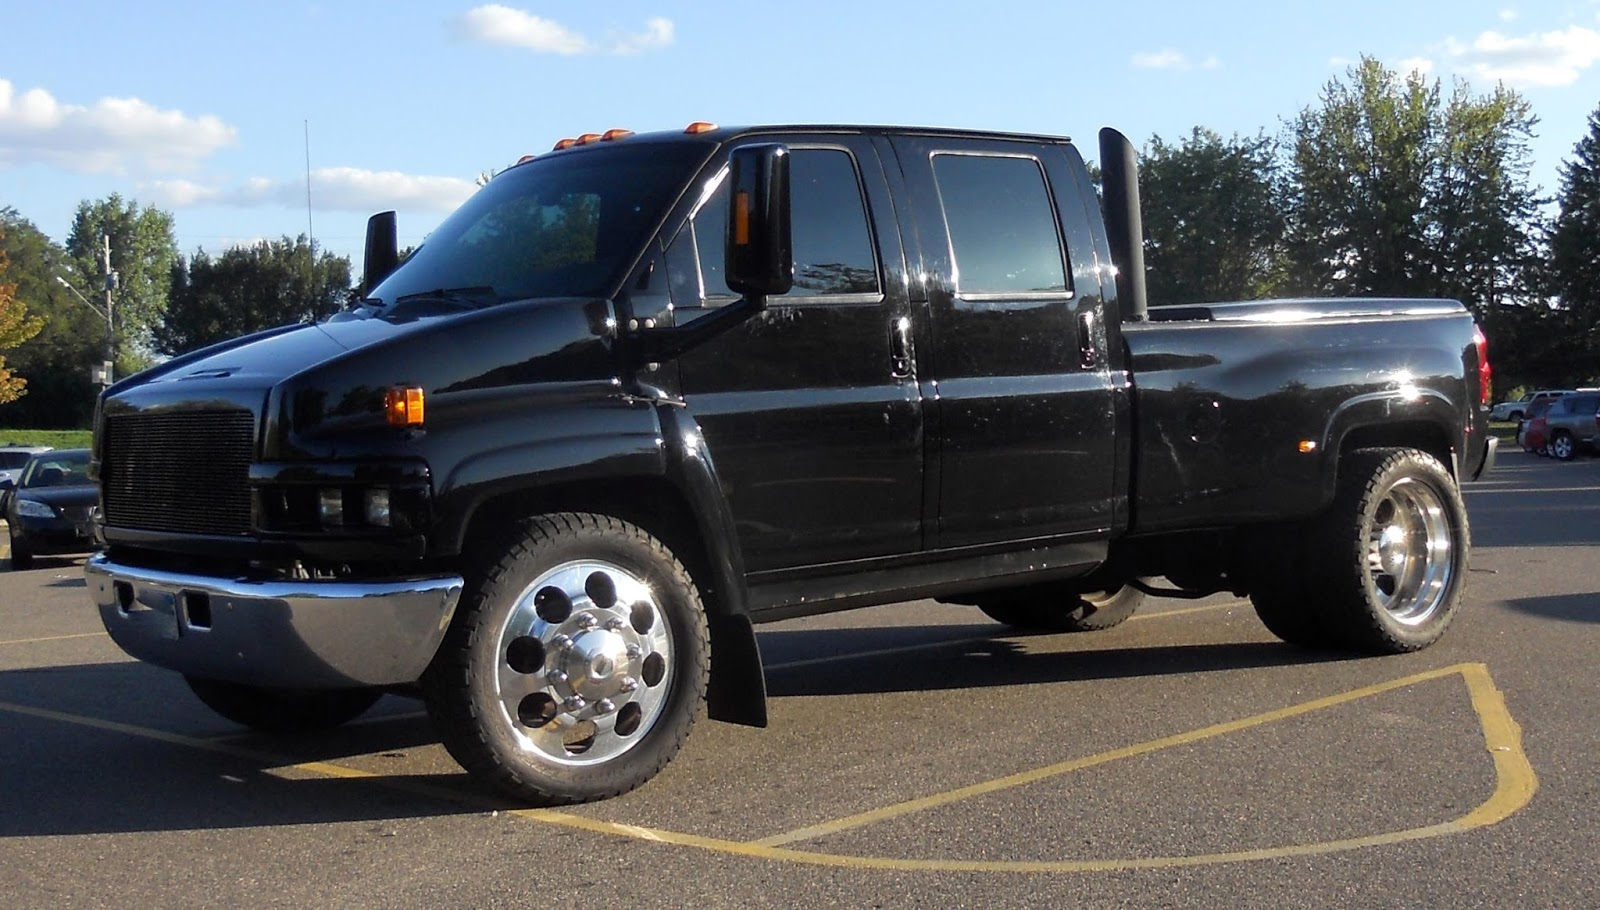 All Chevy chevy c4500 : AutomoZeal: Big Ol' Galoot on 6 wheels: The Monroe Upfitted GMC ...